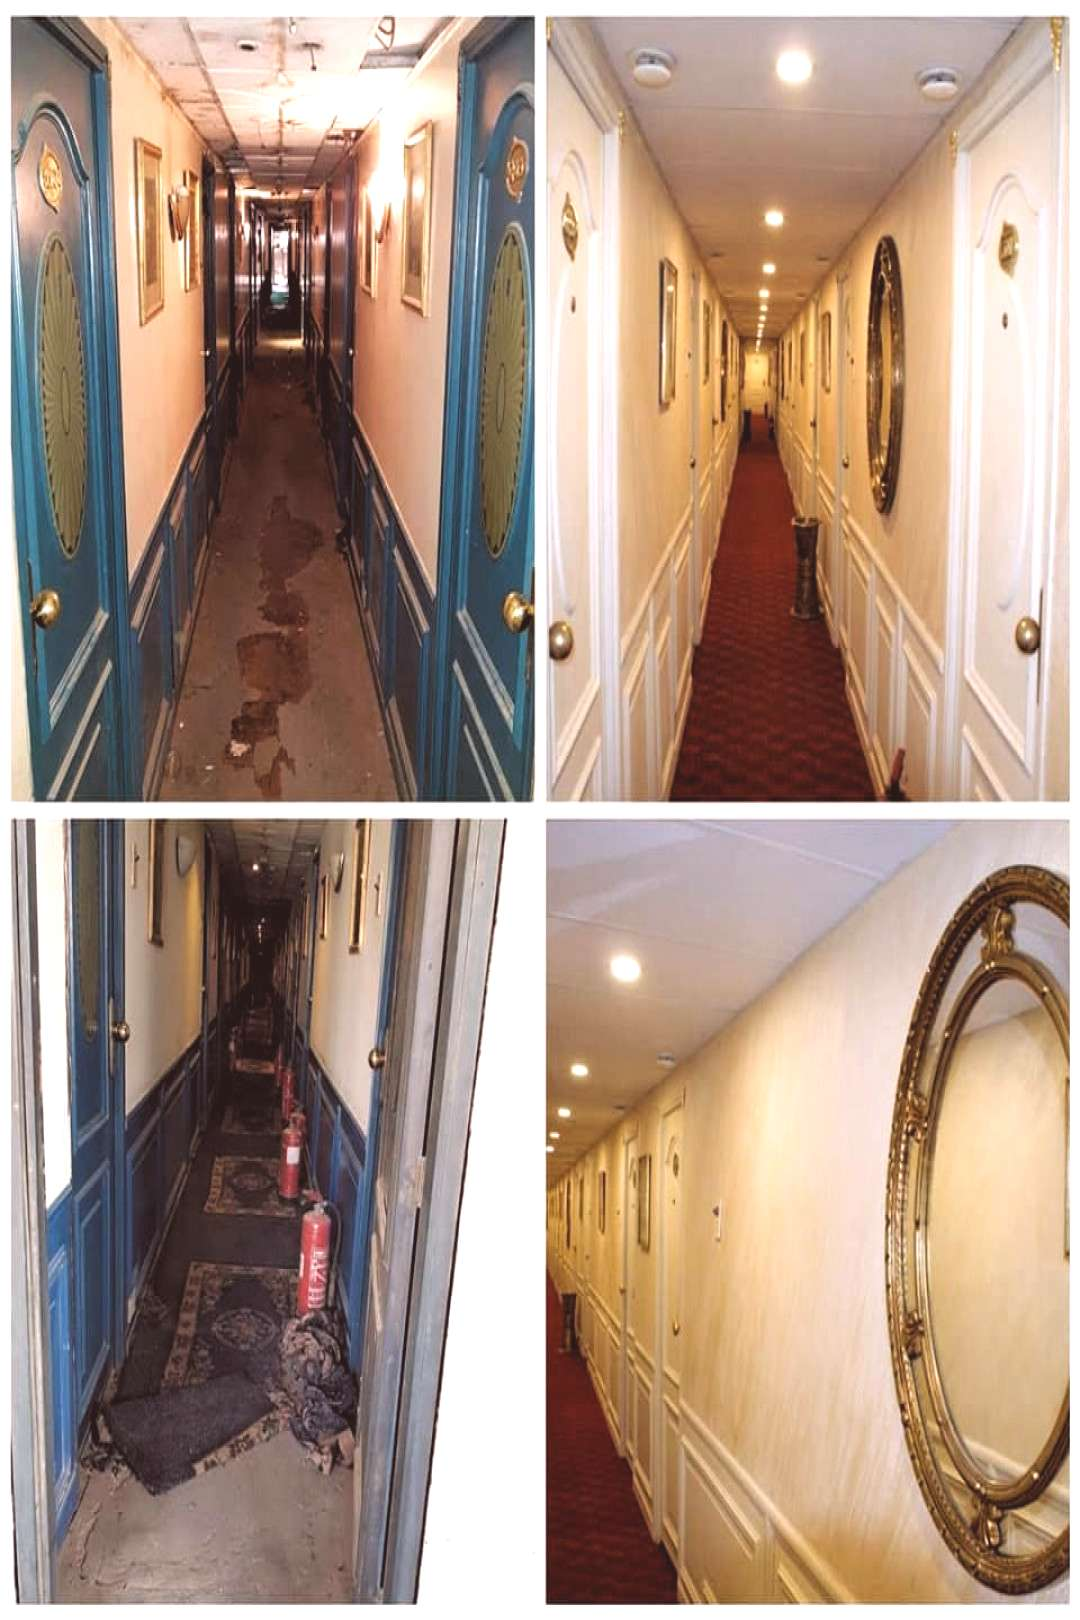 Check out these before-and-after photos of stunning corridors... One of our complete projects, Des